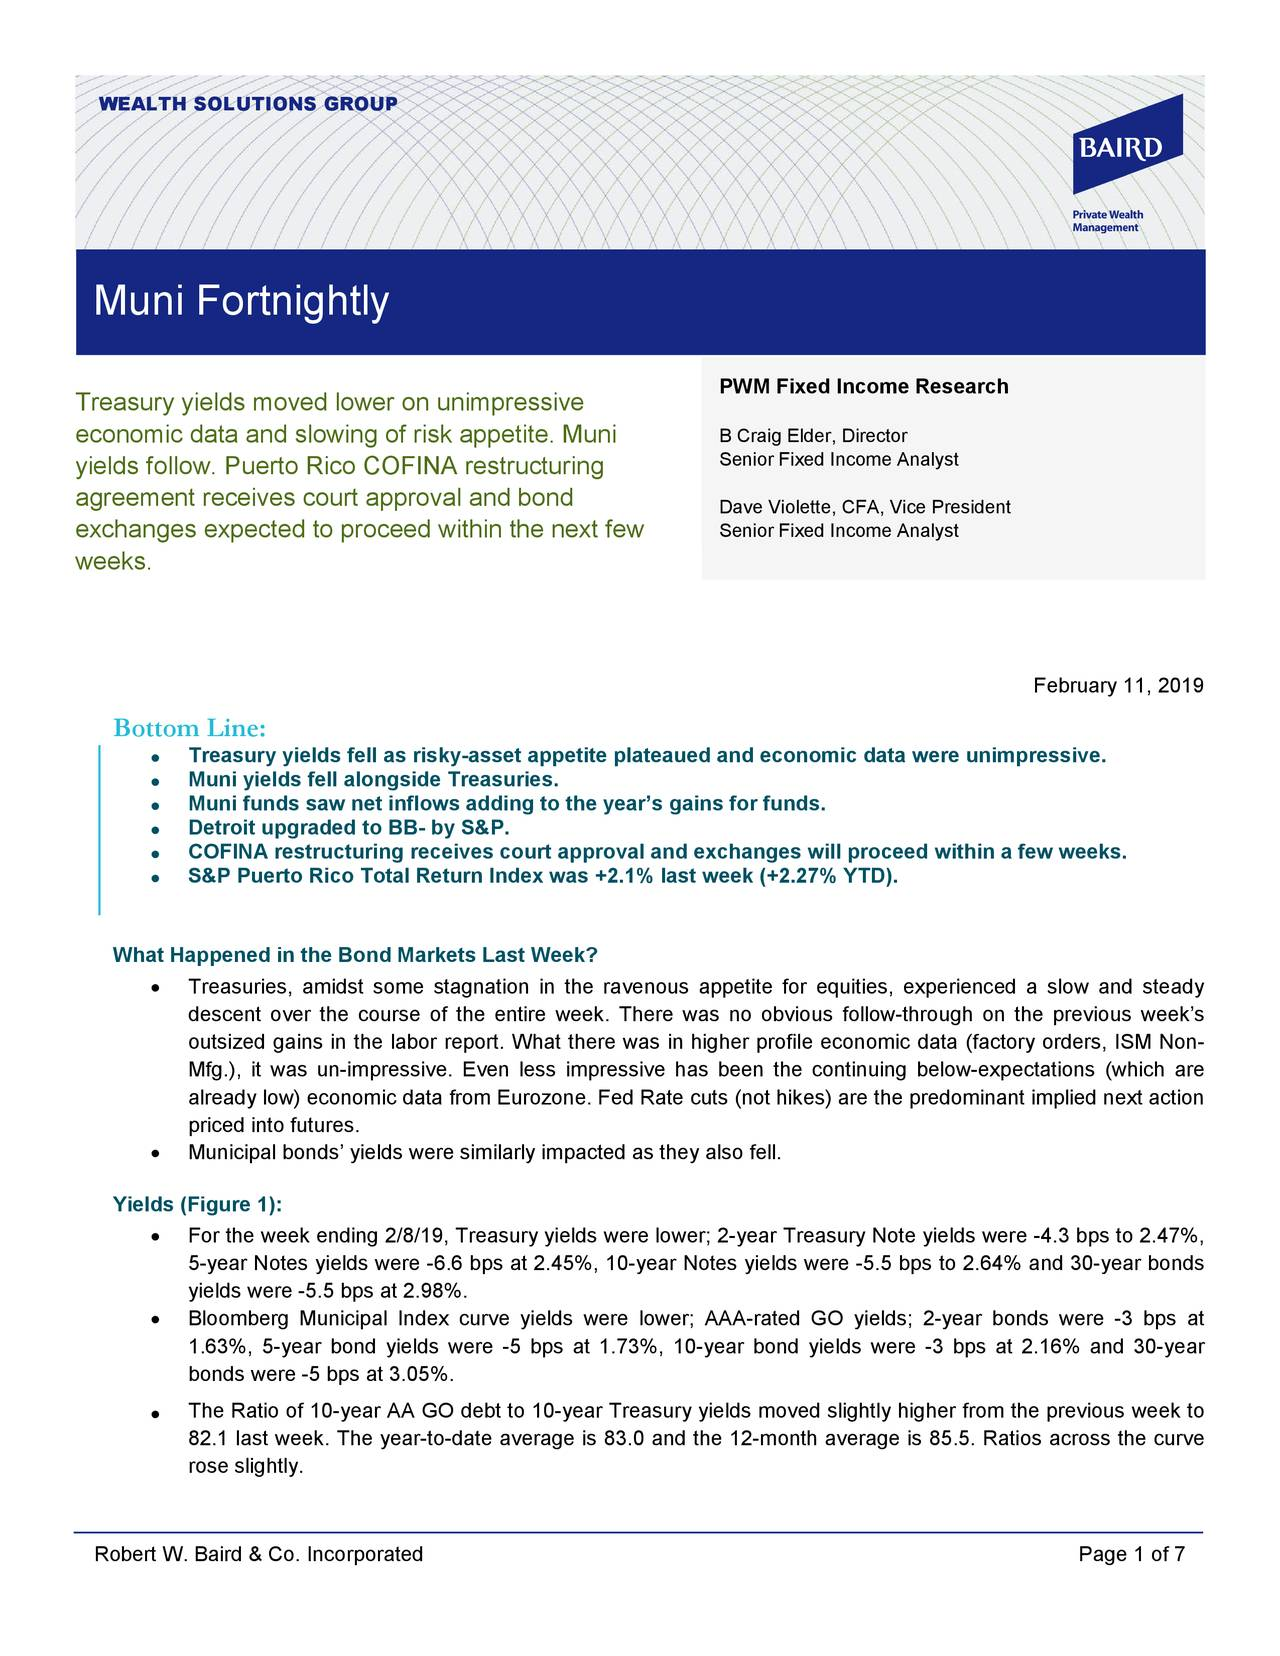 Muni Fortnightly PWM Fixed Income Research Treasury yields moved lower on unimpressive economic data and slowing of risk appetite. Muni David N. Violette, CFA, Vice President yields follow. Puerto Rico COFINA restructuring Senior Fixed Income Analyst agreement receives court approval and bond Dave Violette, CFA, Vice President exchanges expected to proceed within the next few Senior Fixed Income Analyst weeks. February 11, 2019 Bottom Line: • Treasury yields fell as risky-asset appetite plateaued and economic data were unimpressive. • Muni yields fell alongside Treasuries. • Muni funds saw net inflows adding to the year's gains for funds. • Detroit upgraded to BB- by S&P. • COFINA restructuring receives court approval and exchanges will proceed within a few weeks. • S&P Puerto Rico Total Return Index was +2.1% last week (+2.27% YTD). What Happened in the Bond Markets Last Week? • Treasuries, amidst some stagnation in the ravenous appetite for equities, experienced a slow and steady descent over the course of the entire week. There was no obvious follow -through on the previous week's outsized gains in the labor report. What there was in higher profile economic data (factory orders, ISM No- Mfg.), it was un- impressive. Even less impressive has been the continuing below -expectations (which are already low) economic data from Eurozone. Fed Rate cuts (not hikes) are the predominant implied next action priced into futures. • Municipal bonds' yields were similarly impacted as they also fell. Yields (Figure 1): • For the week ending 2/8/19, Treasury yields were lower; 2- year Treasury Note yields were -4.3 bps to 2.47%, 5-year Notes yields were -6.6 bps at 2.45%, 10-year Notes yields were -5.5 bps to 2.64% and 30-year bonds yields were -5.5 bps at 2.98%. • Bloomberg Municipal Index curve yields were lower; AAA -rated GO yields; 2- year bonds were - 3 bps at 1.63%, 5-year bond yields were - 5 bps at 1.73%, 10- year bond yields were -3 bps at 2.16% and 30- year bonds were 